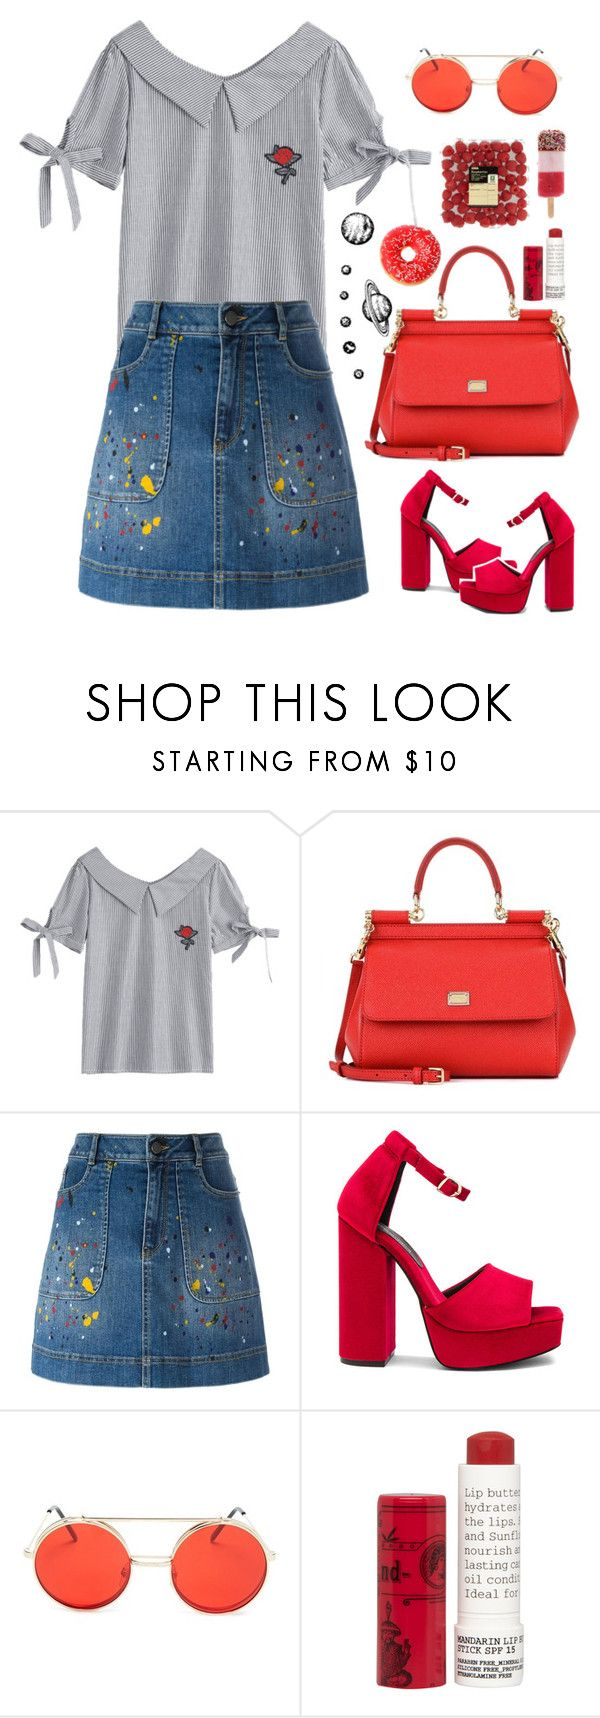 """""""Untitled #238"""" by idkwalsh ❤ liked on Polyvore featuring Dolce&Gabbana, Alice + Olivia, Jeffrey Campbell, Forever 21 and Korres"""